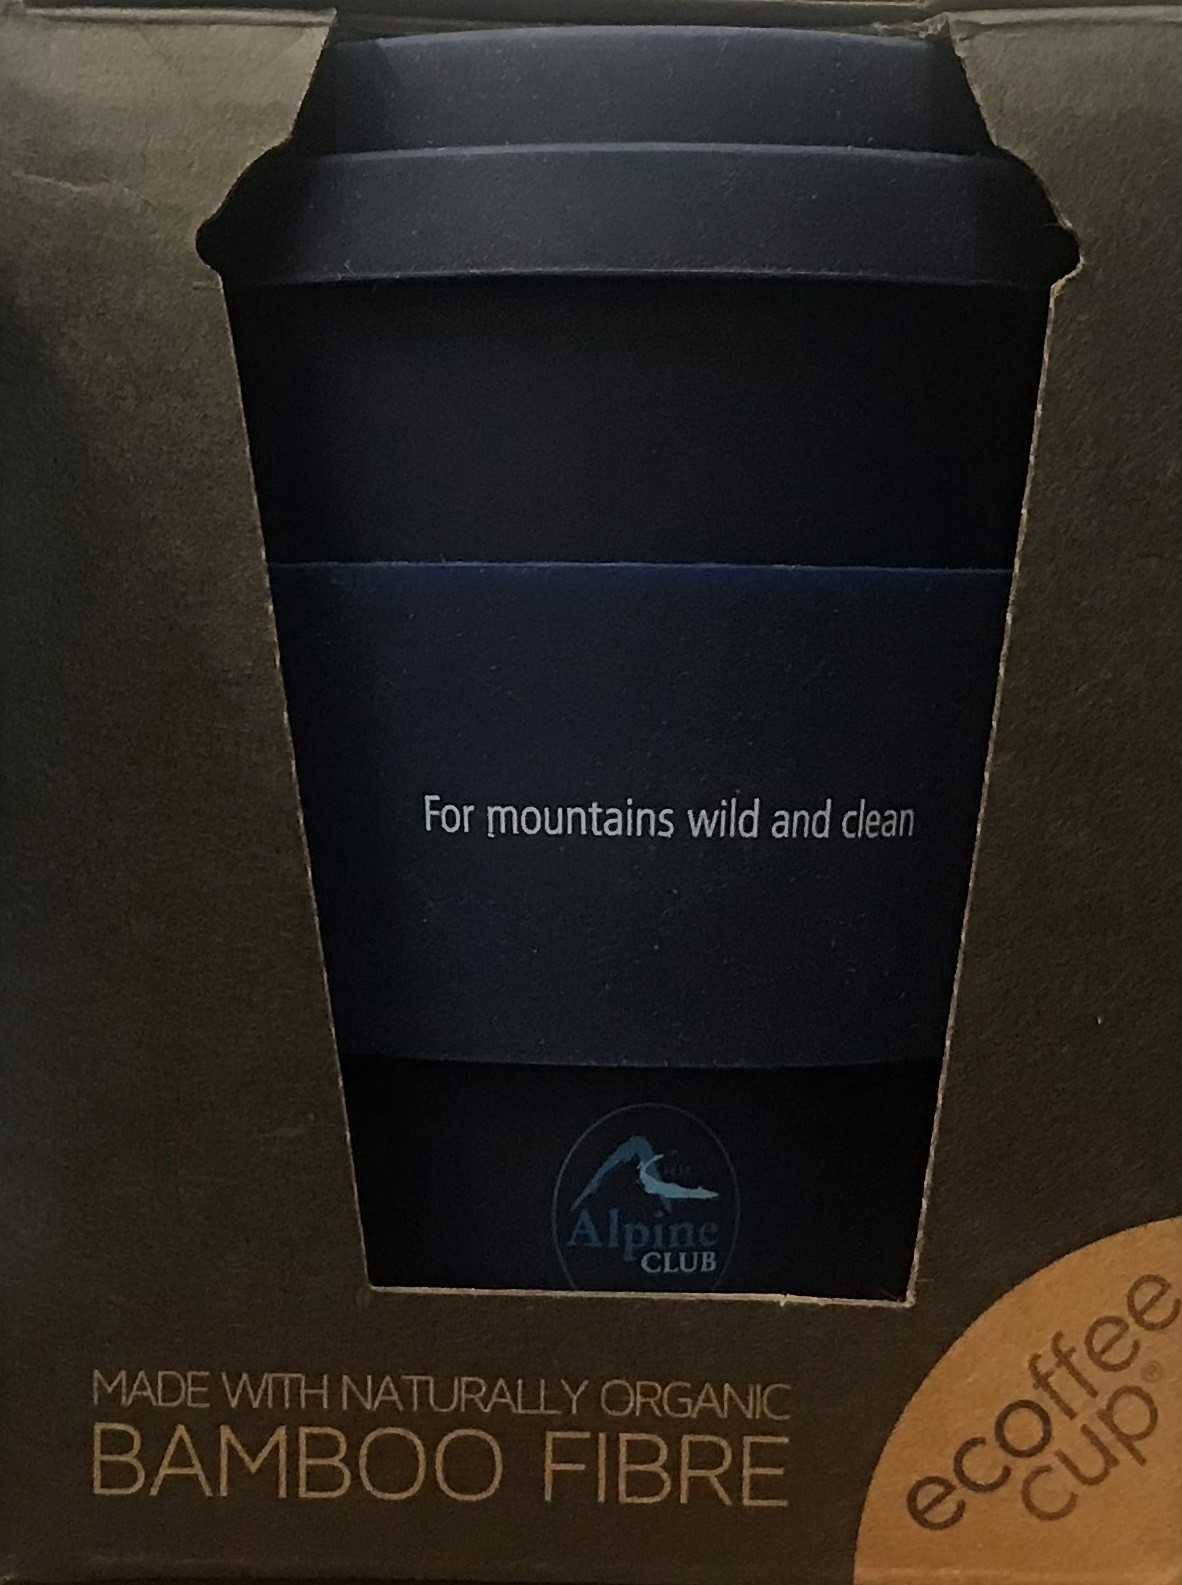 Alpine Club reusable cup